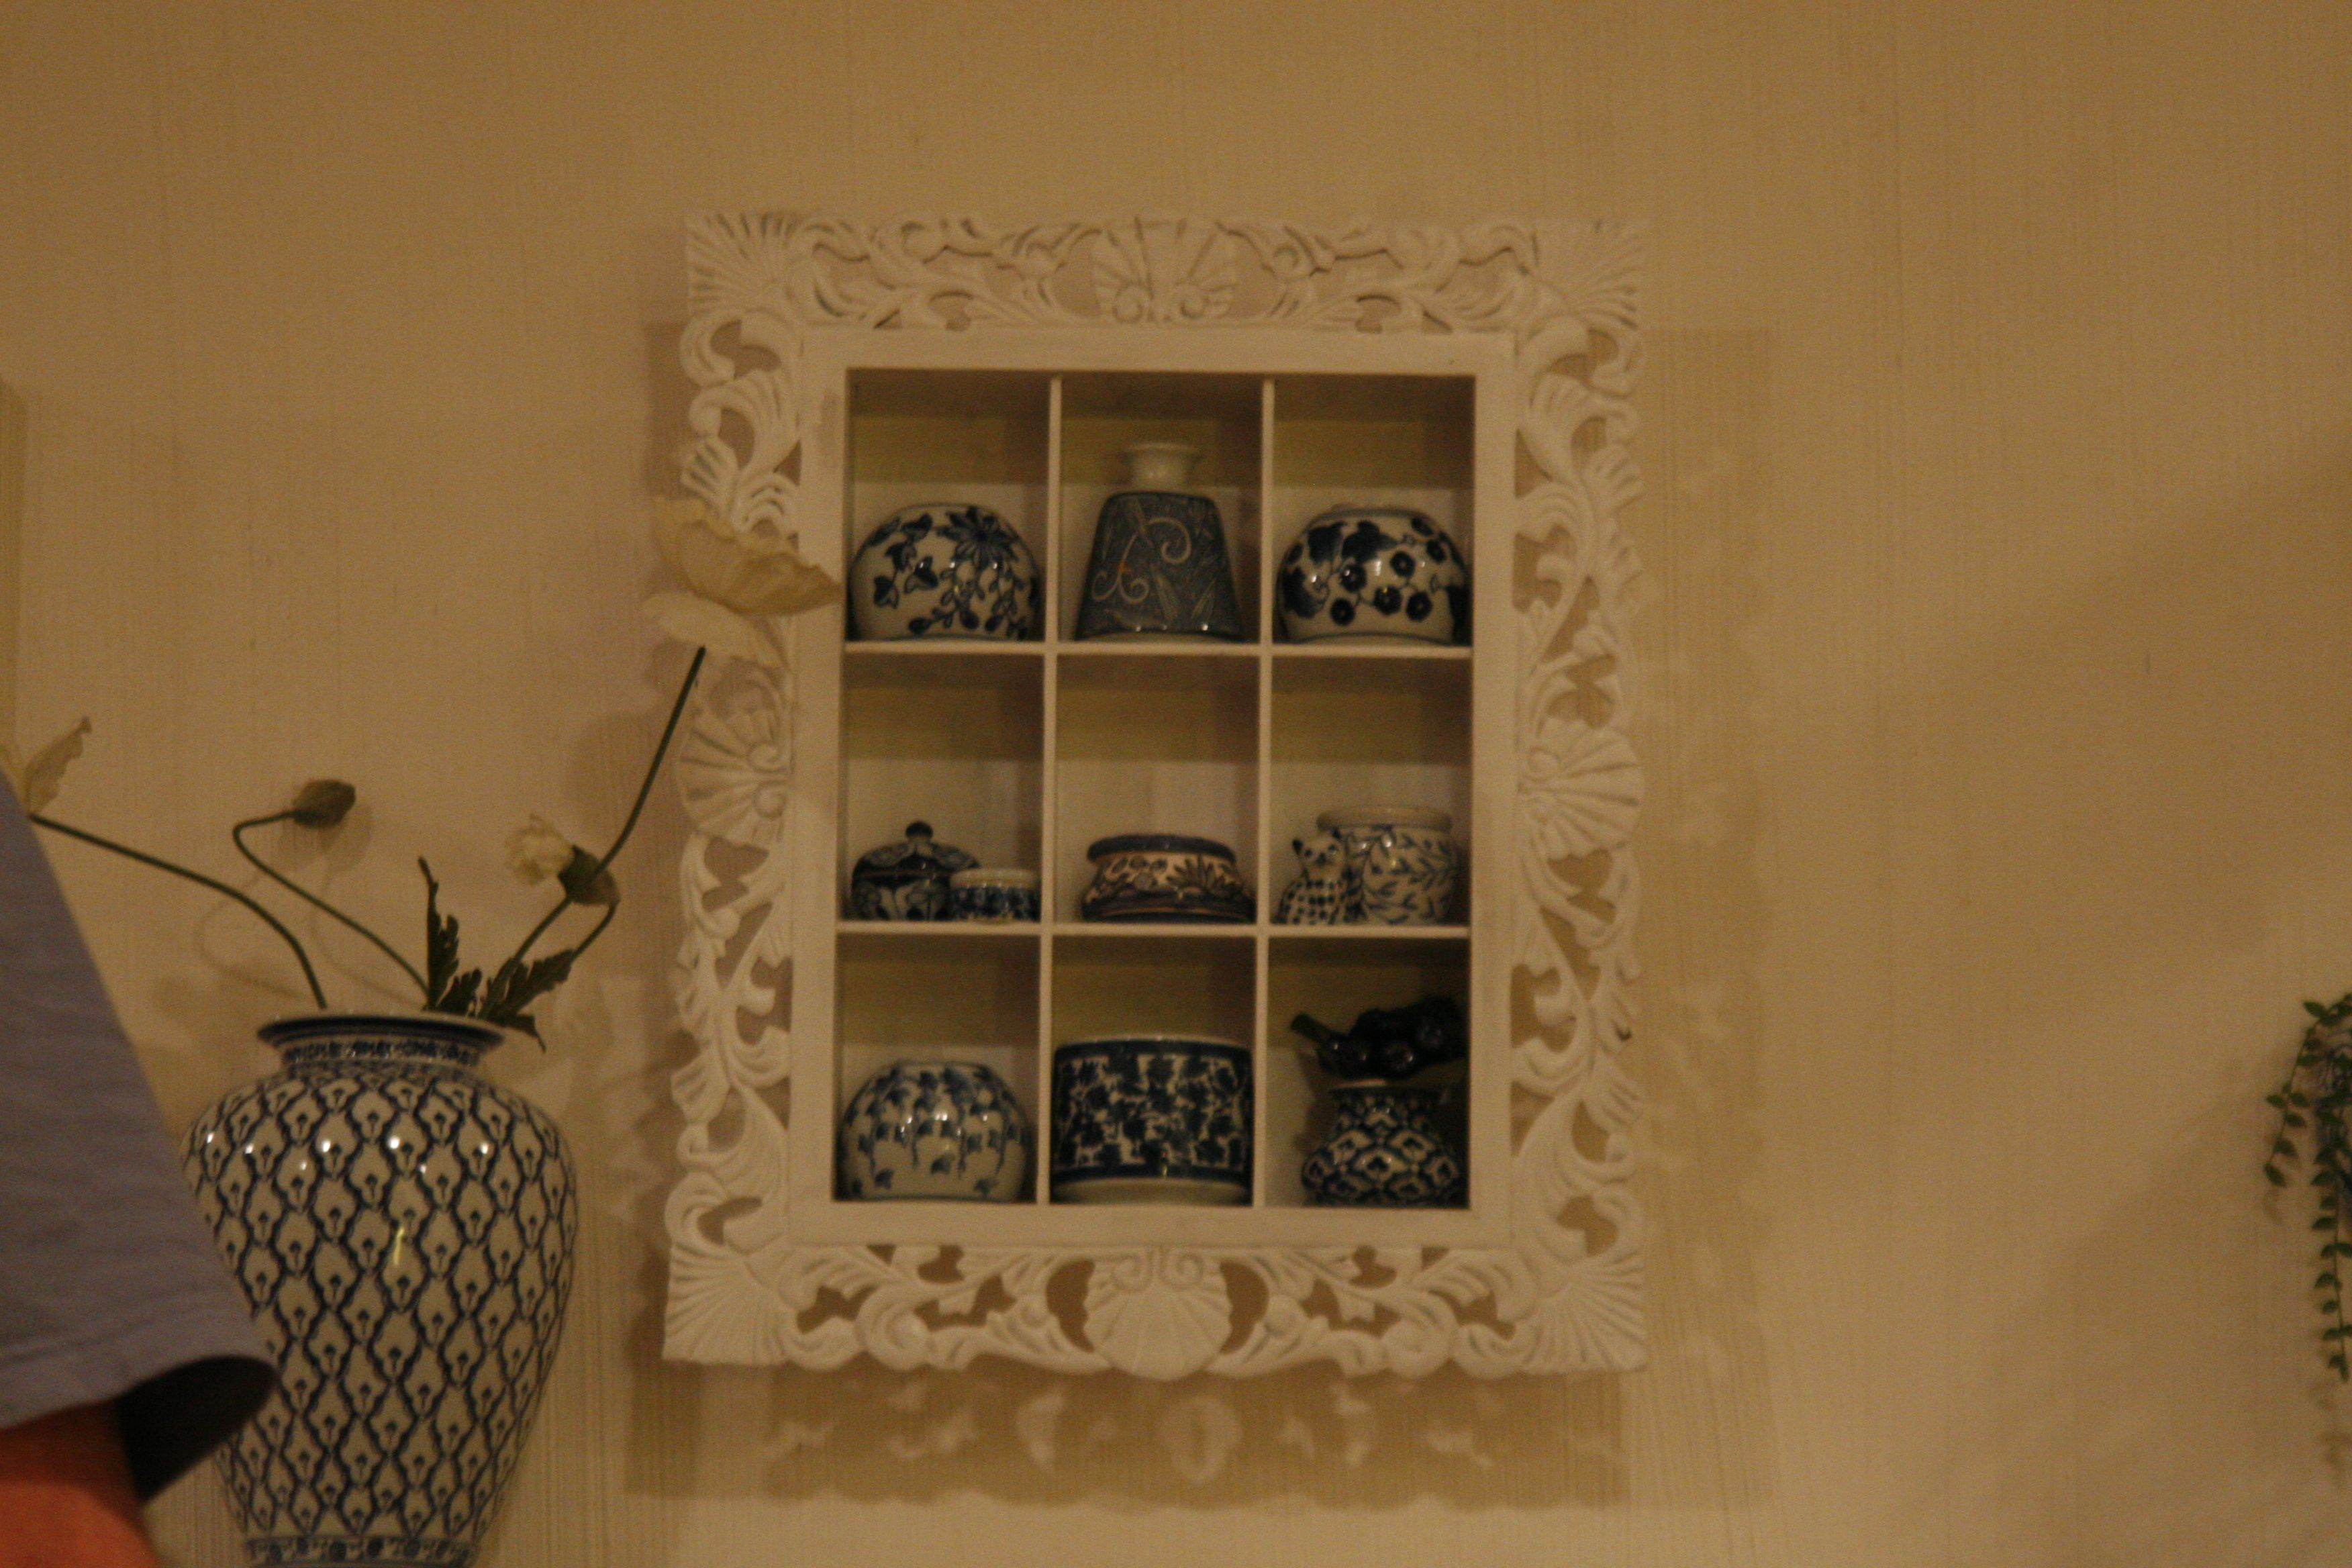 Wall shelf home decor ideas pinterest for Wall decorating ideas pinterest